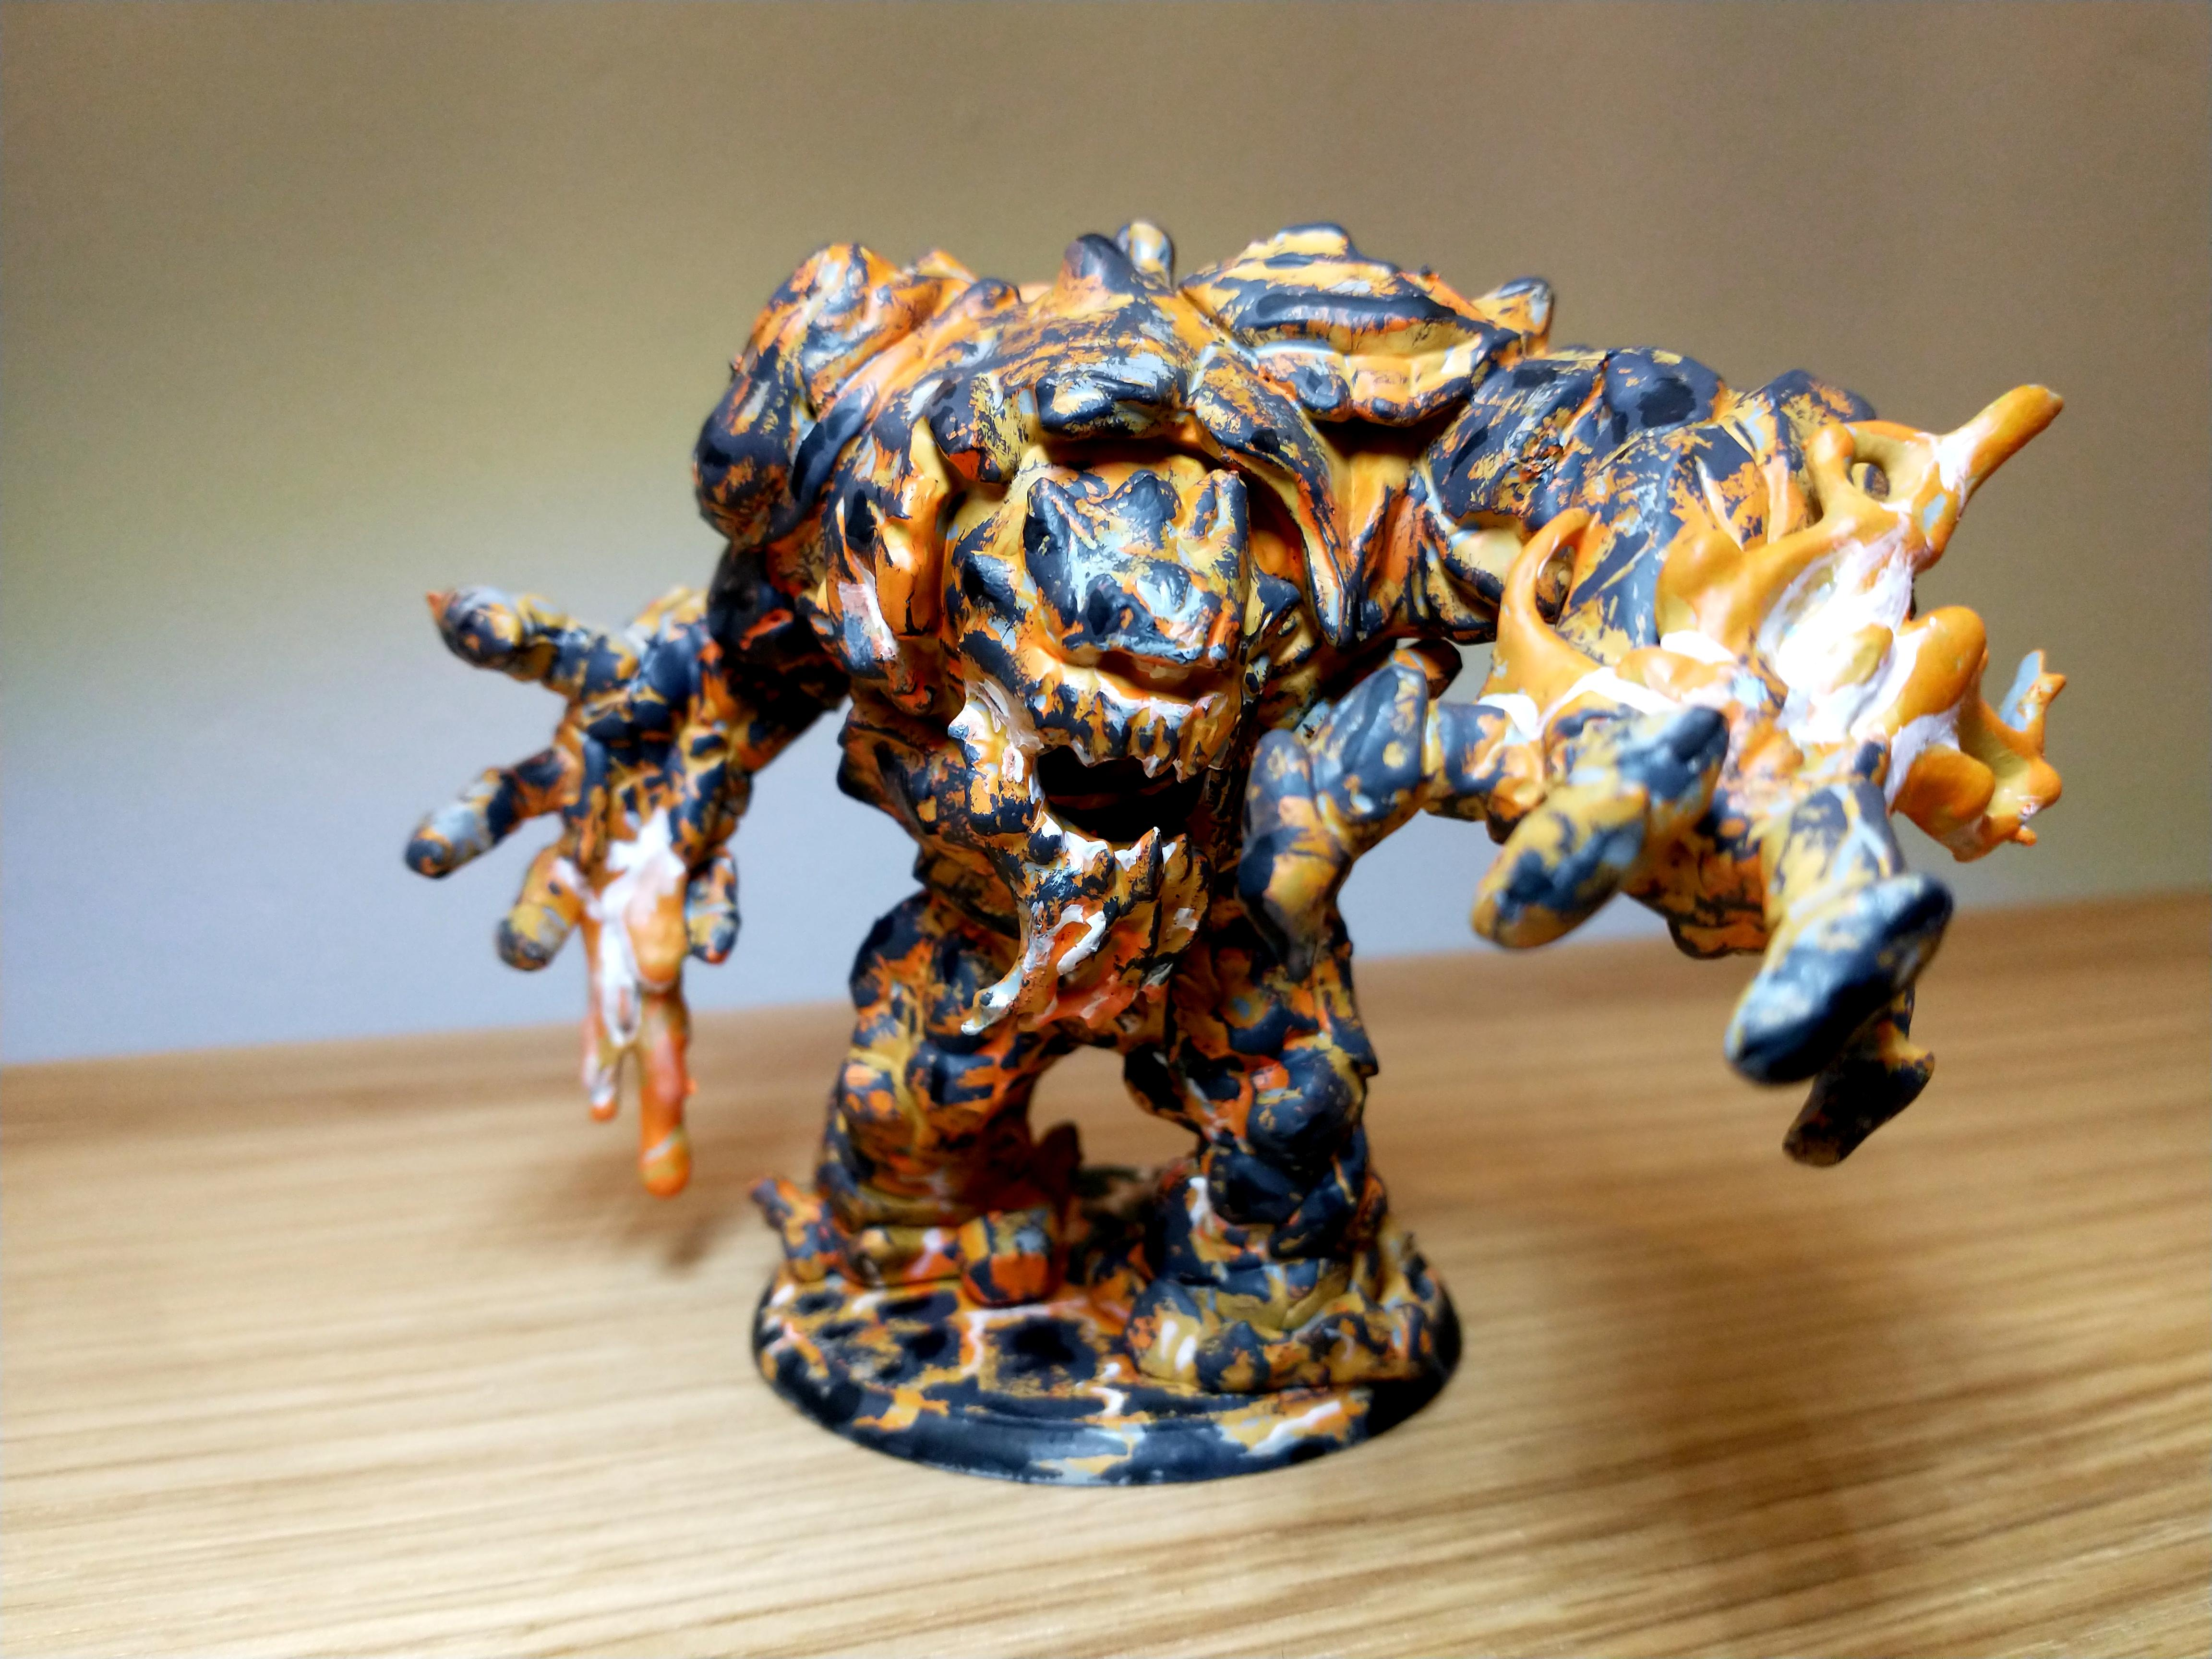 Magma Giant of Cynder